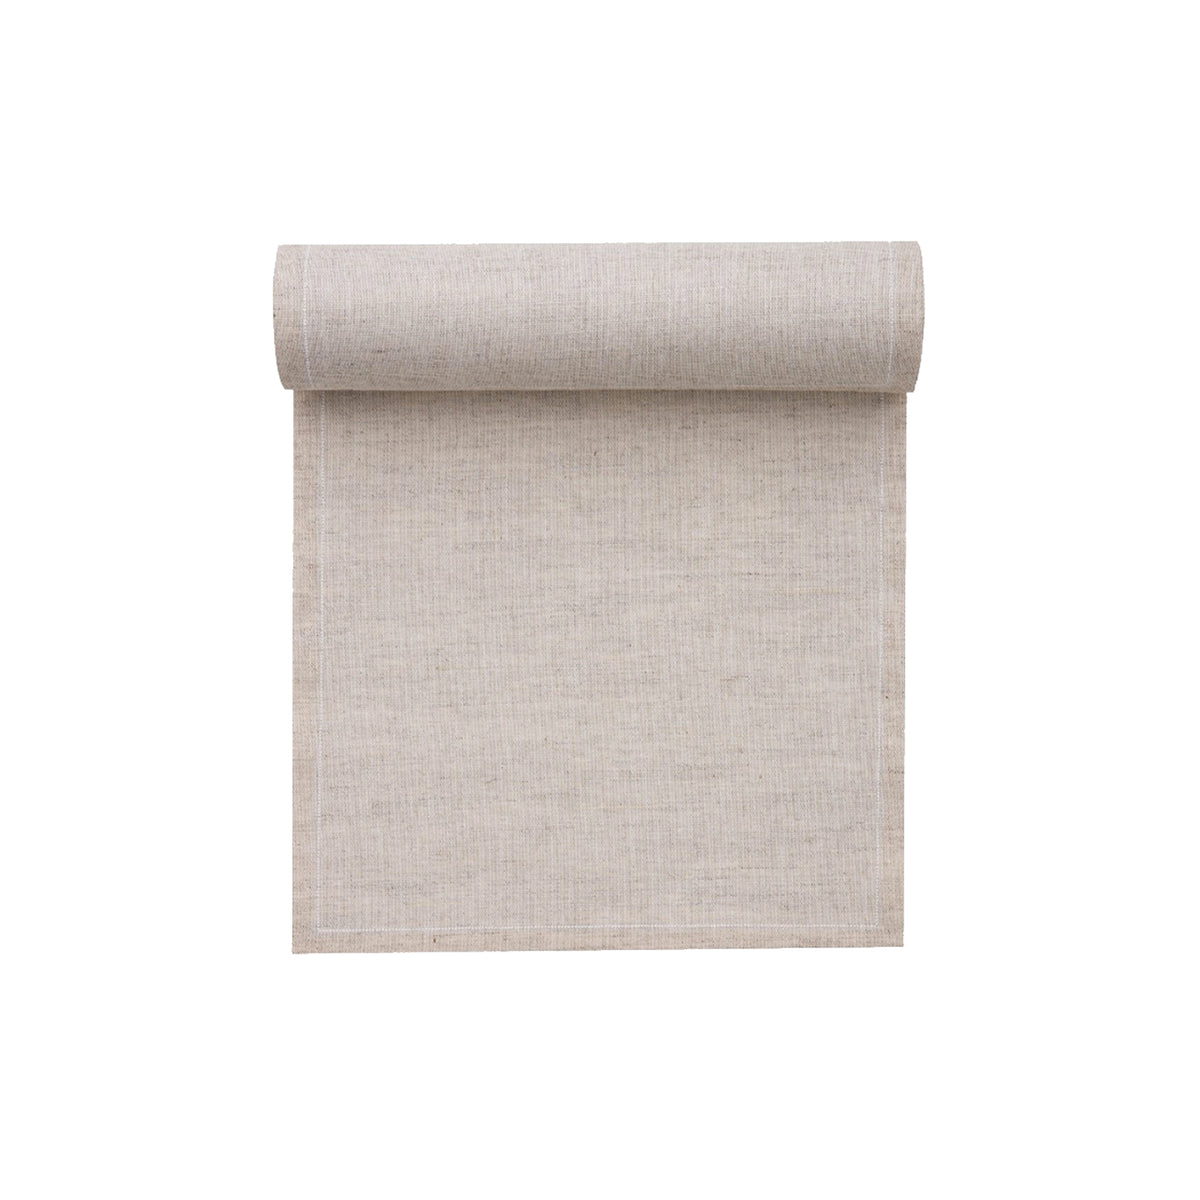 50 Natural Cocktail Napkin Roll